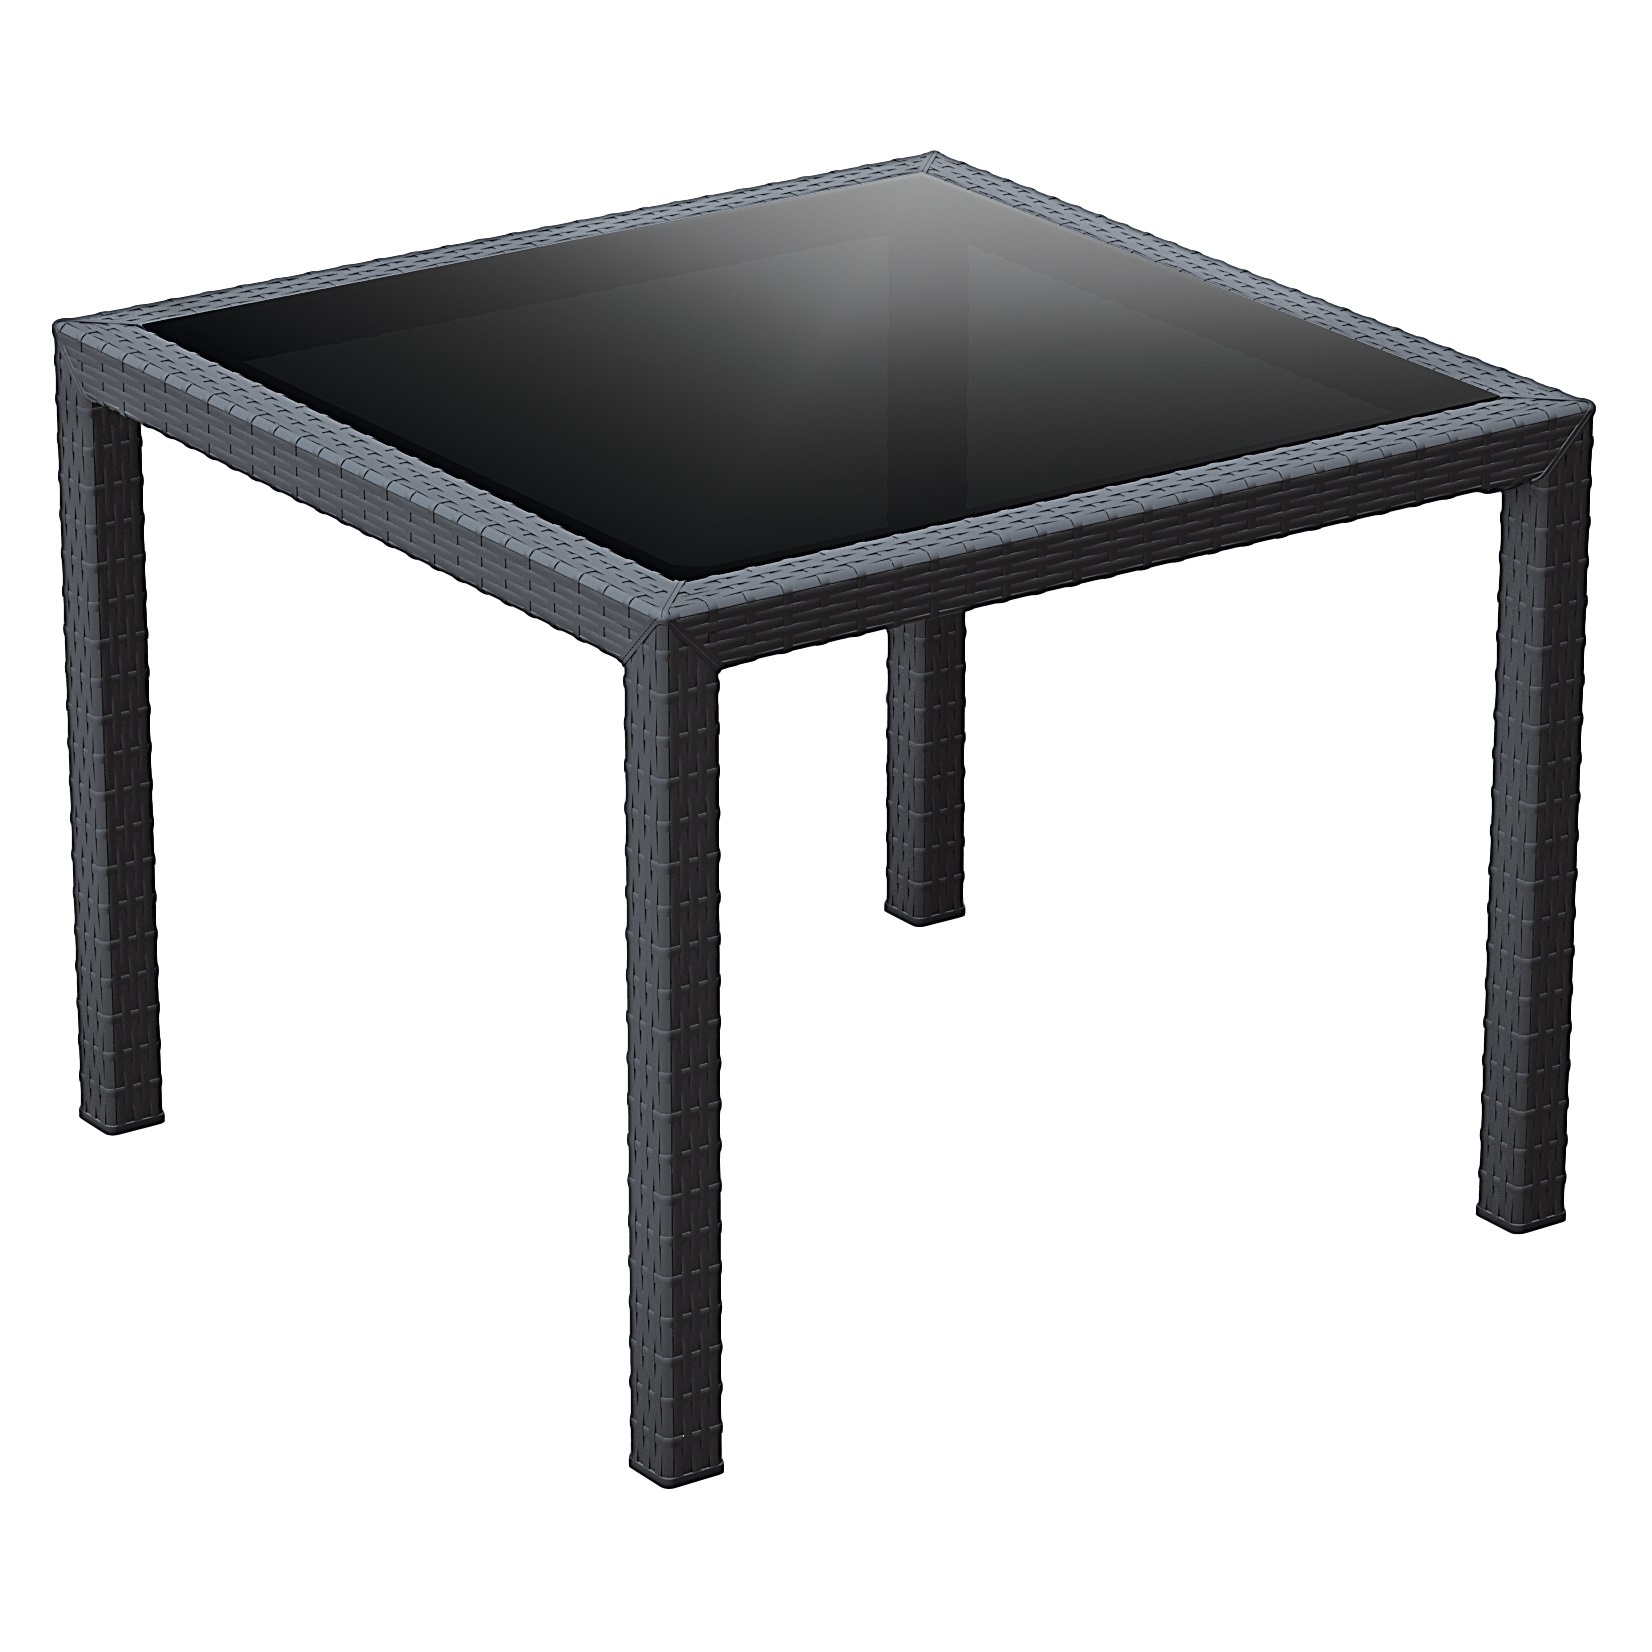 Bali Table 940 x 940 - Anthracite